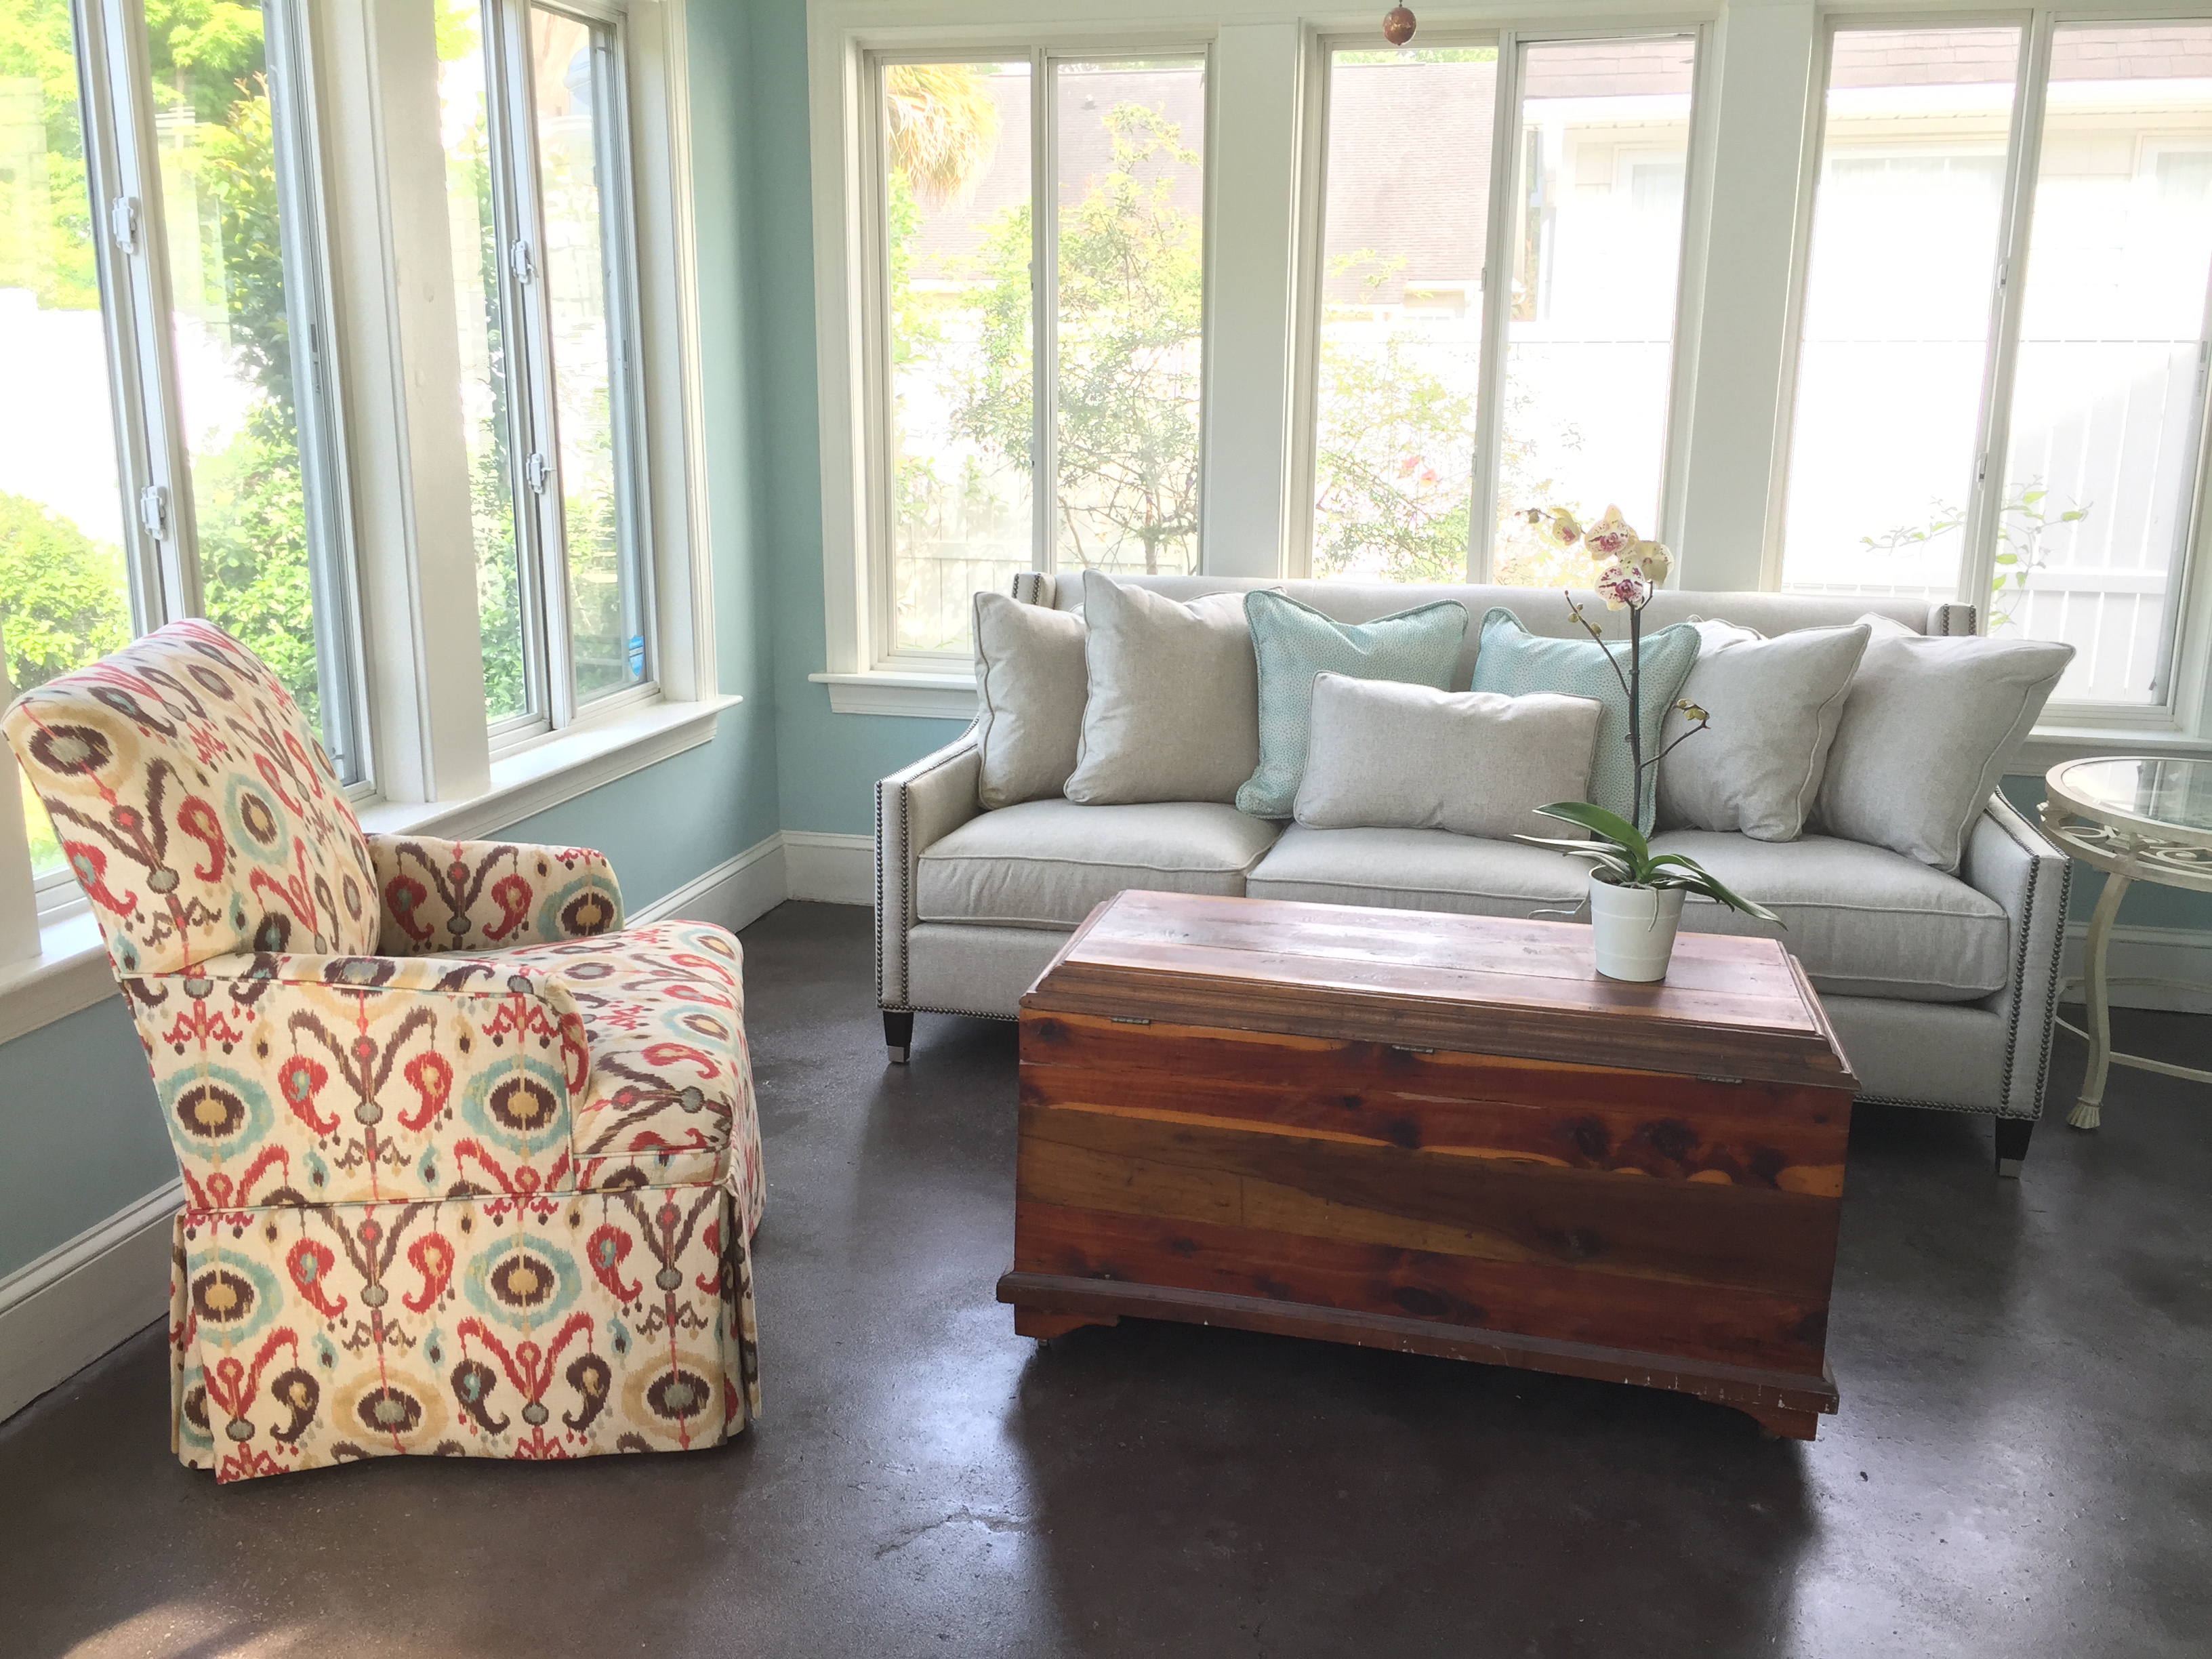 Christy Davis Interiors: James Island interior design